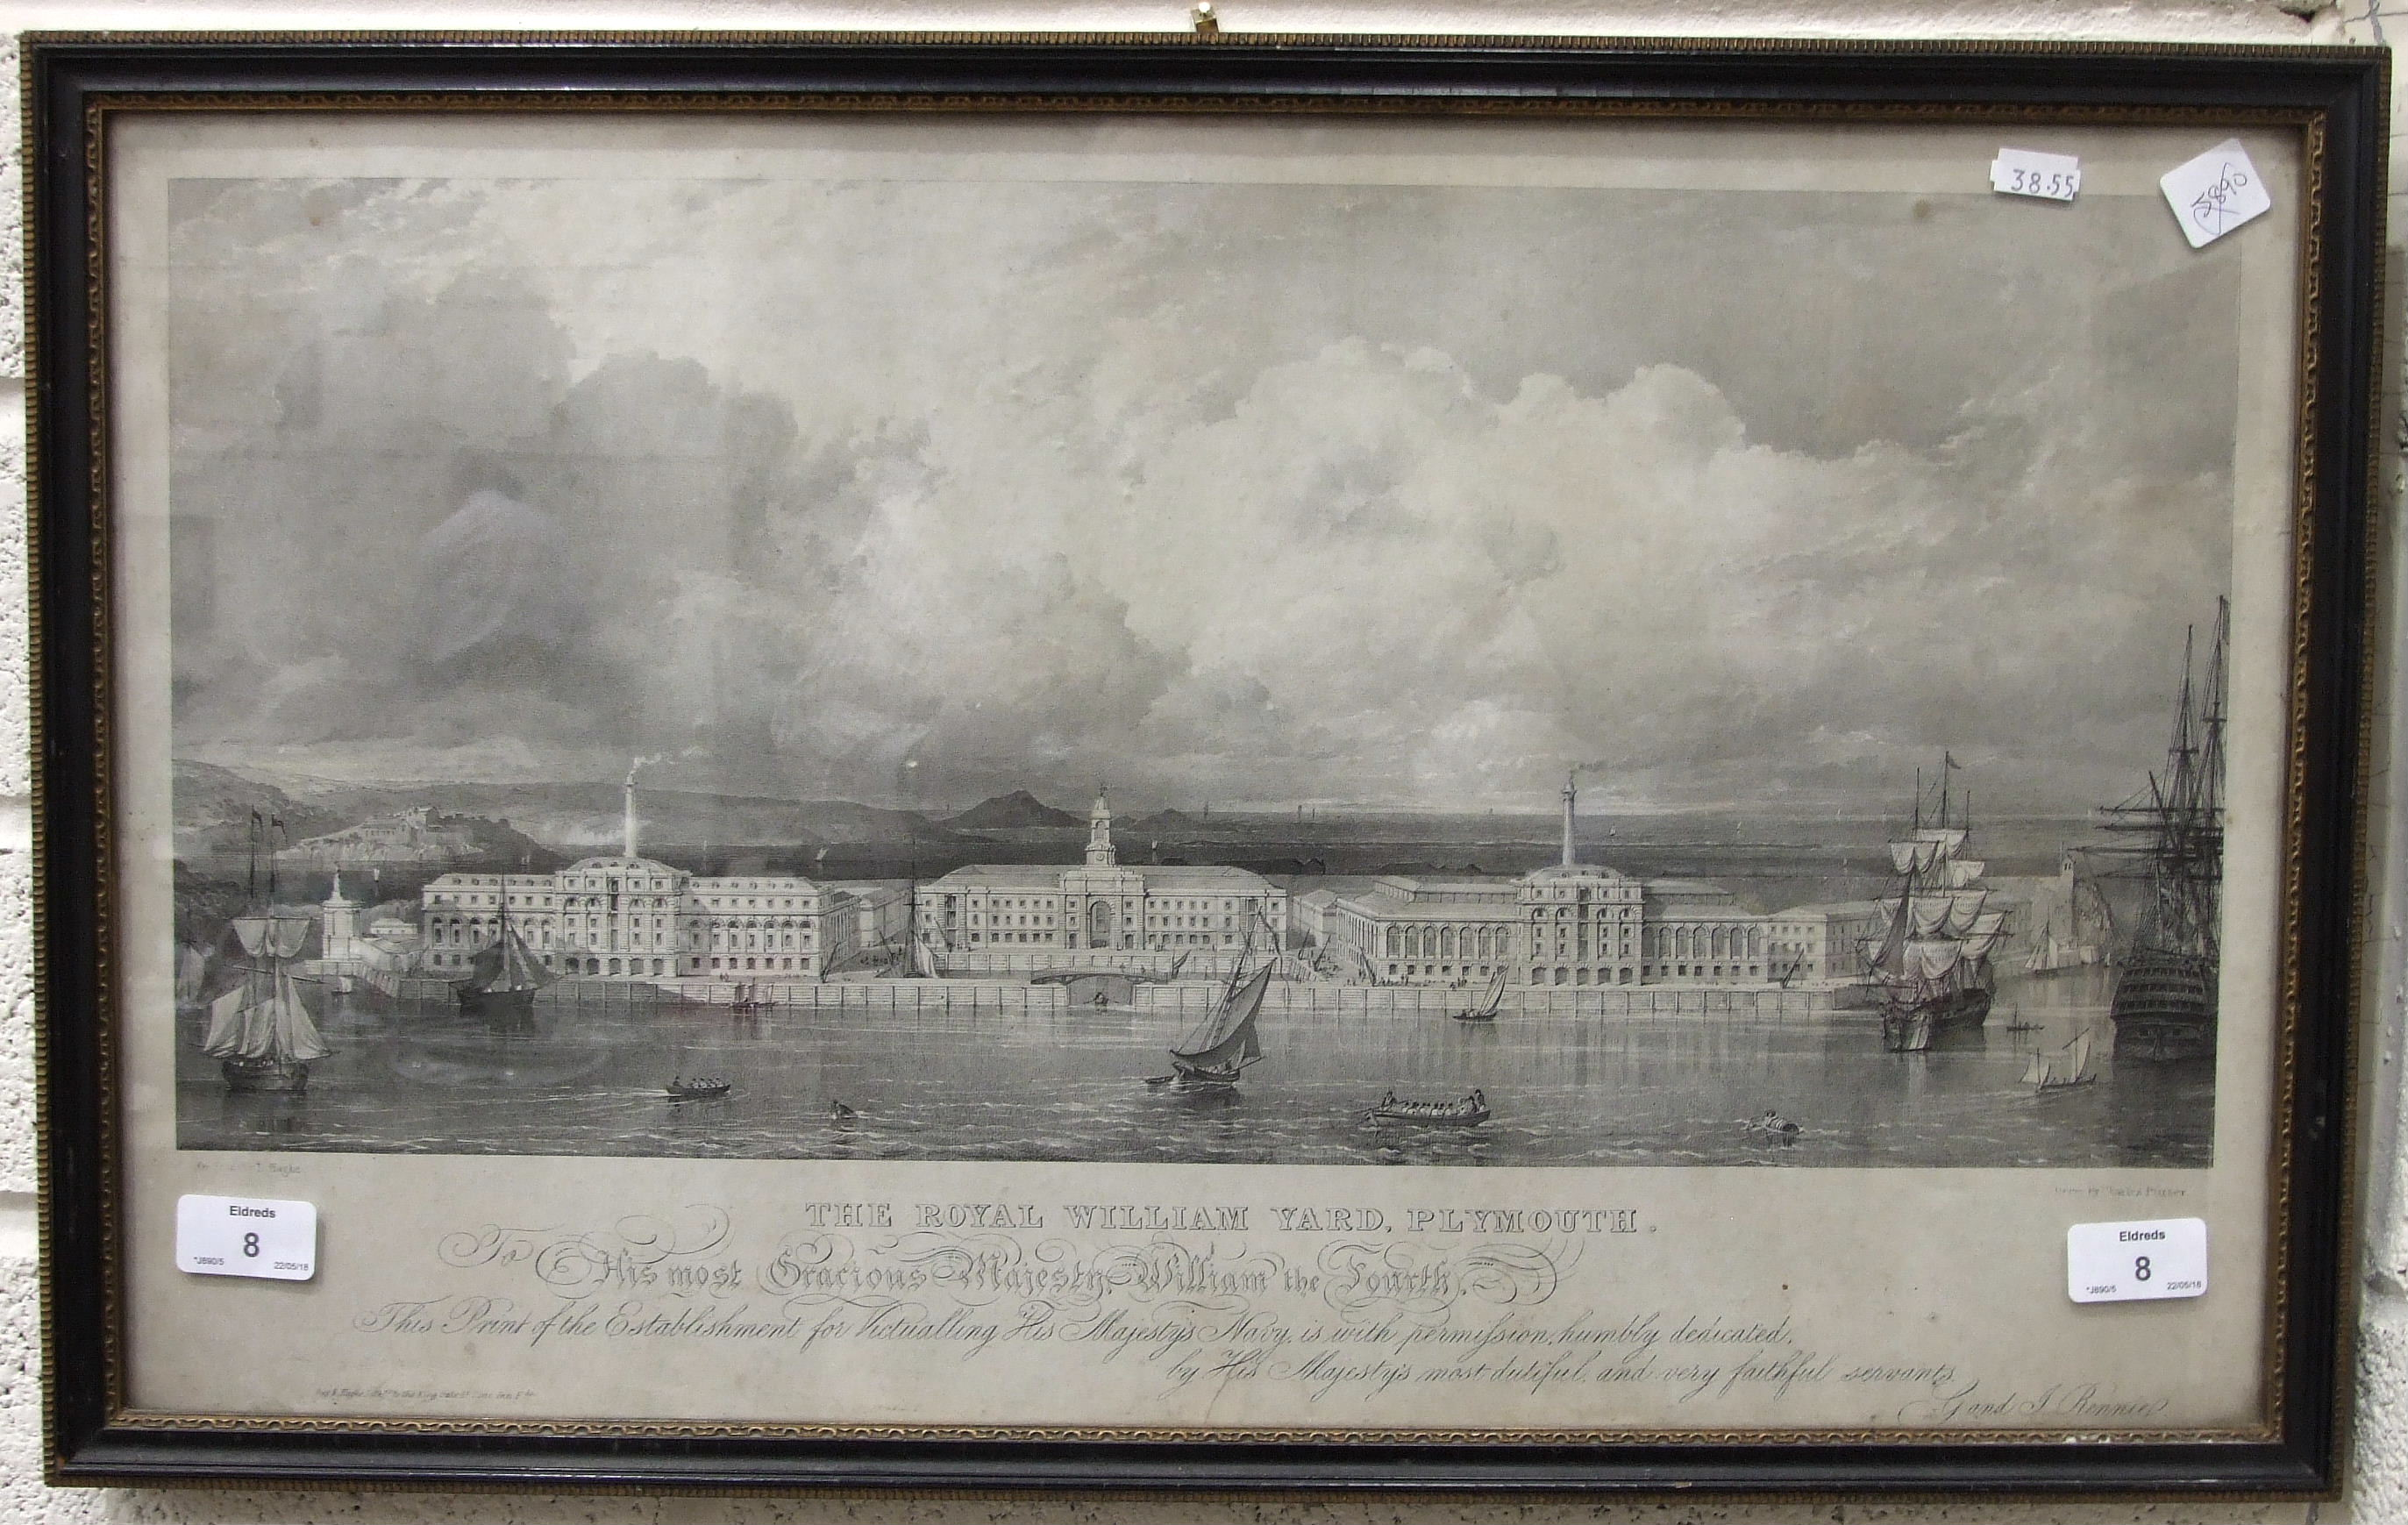 After Charles Purser, 'The Royal William Yard, Plymouth', a framed lithograph, Pub. Day & Haghe,